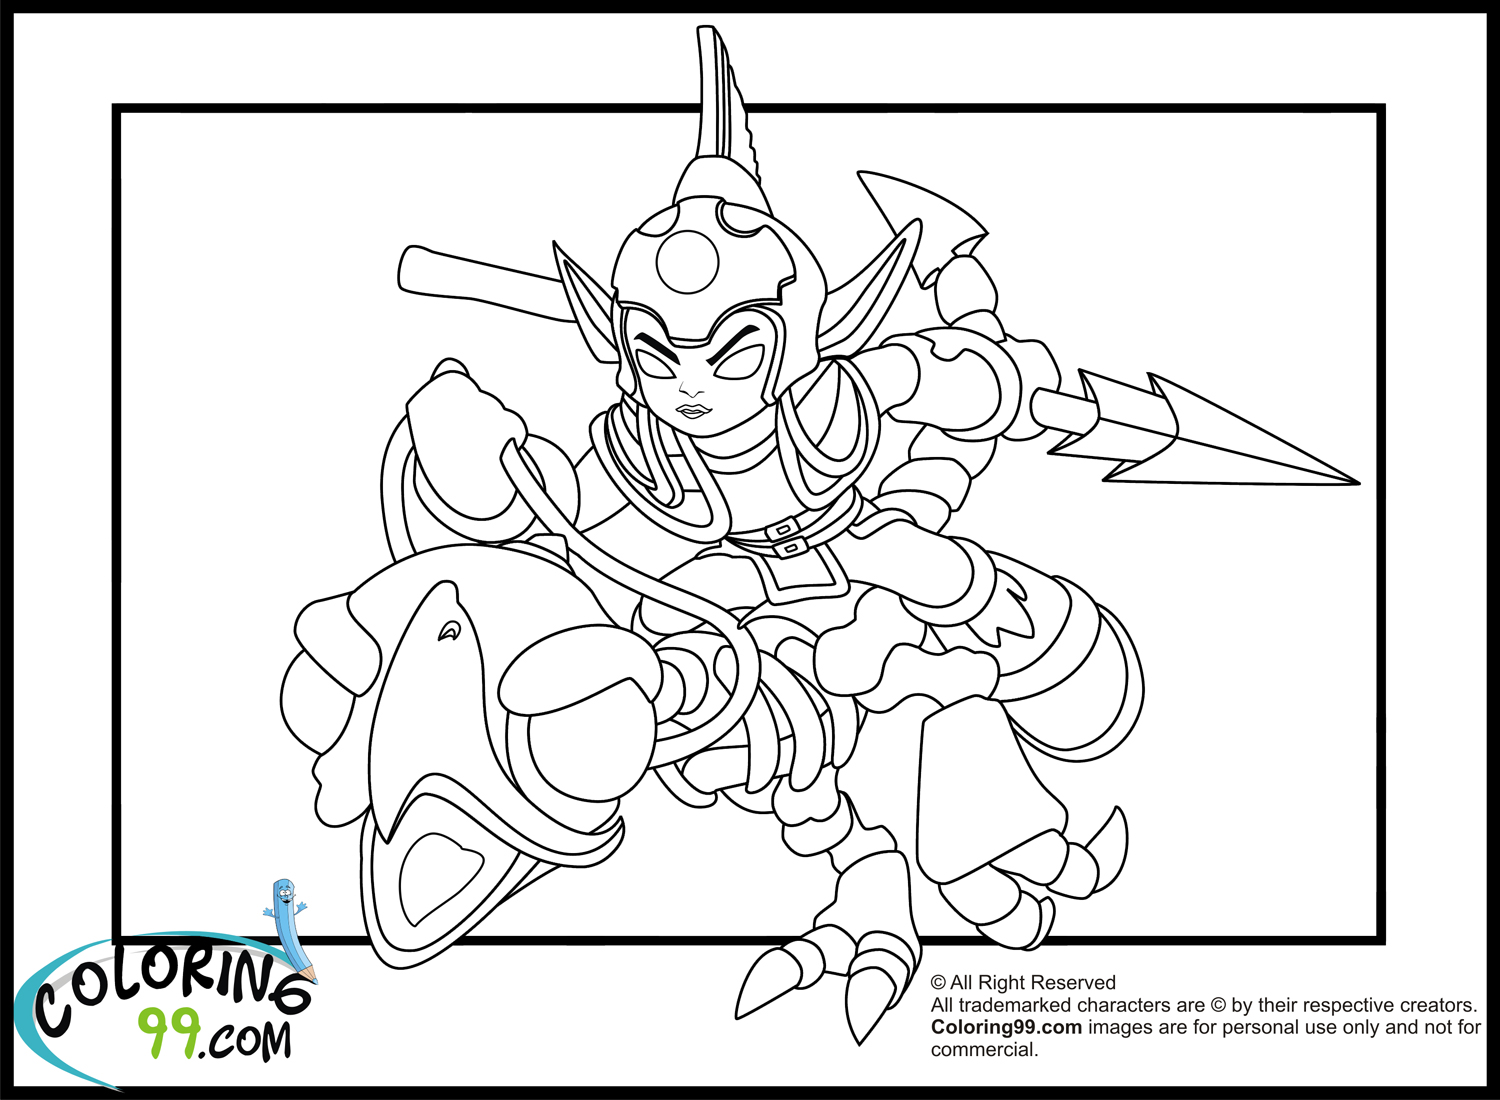 Skylanders Elves Coloring Pages | Minister Coloring